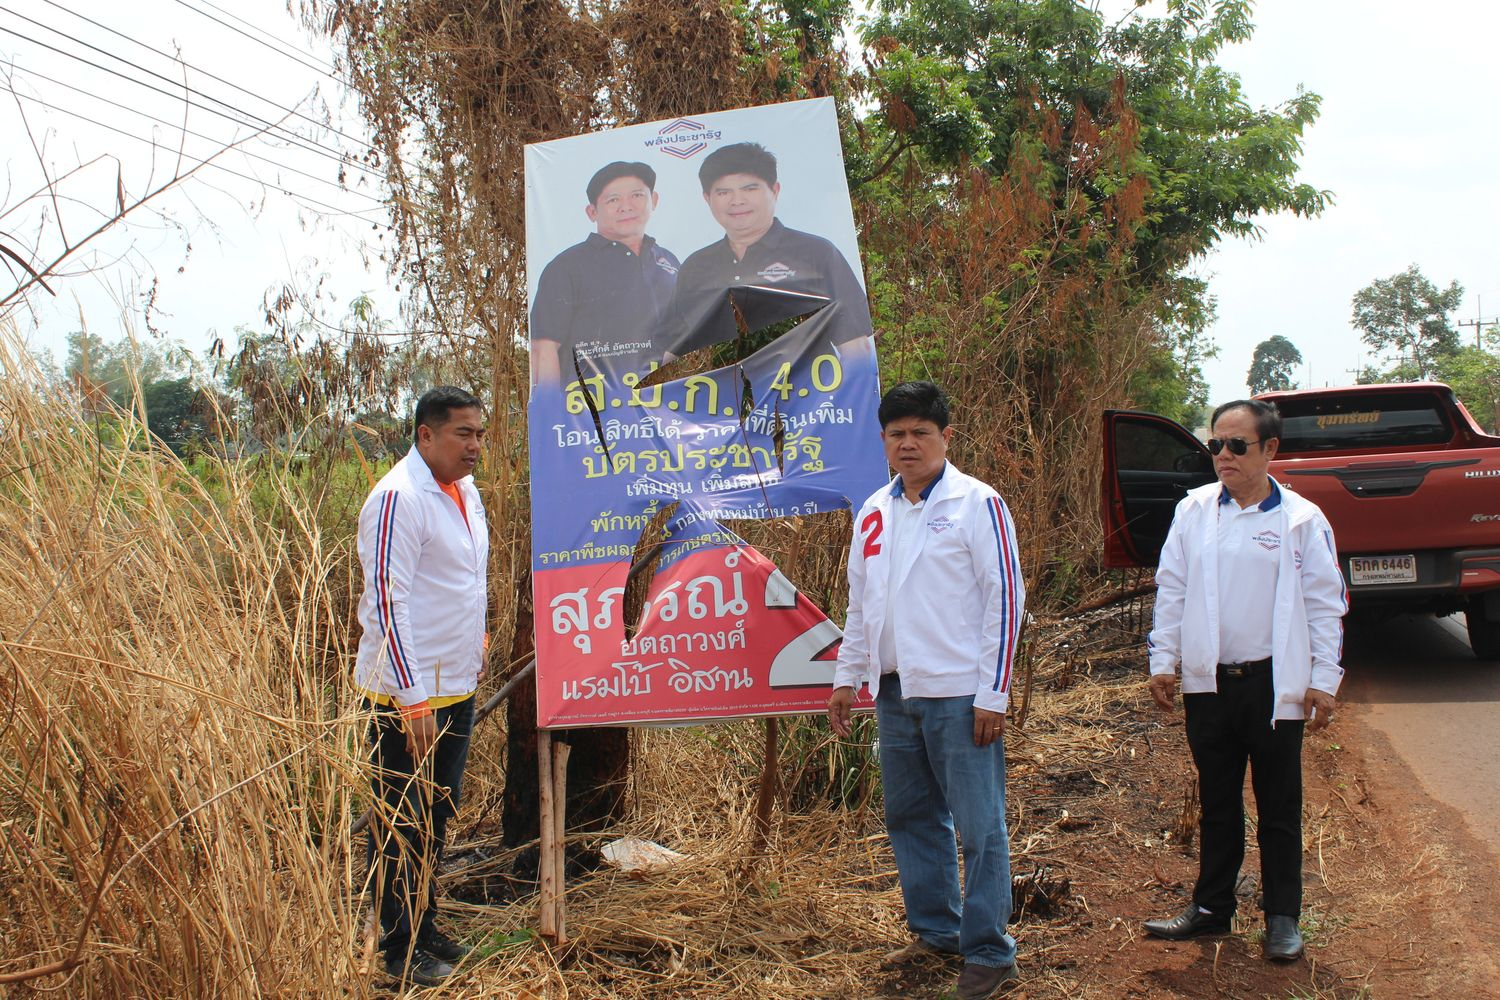 Suporn Atthawong (centre) shows one of his damaged election campaign posters in Nakhon Ratchasima on Feb 24 this year. He asked police to take legal action against the vandals. (Photo by Prasit Tangprasert)